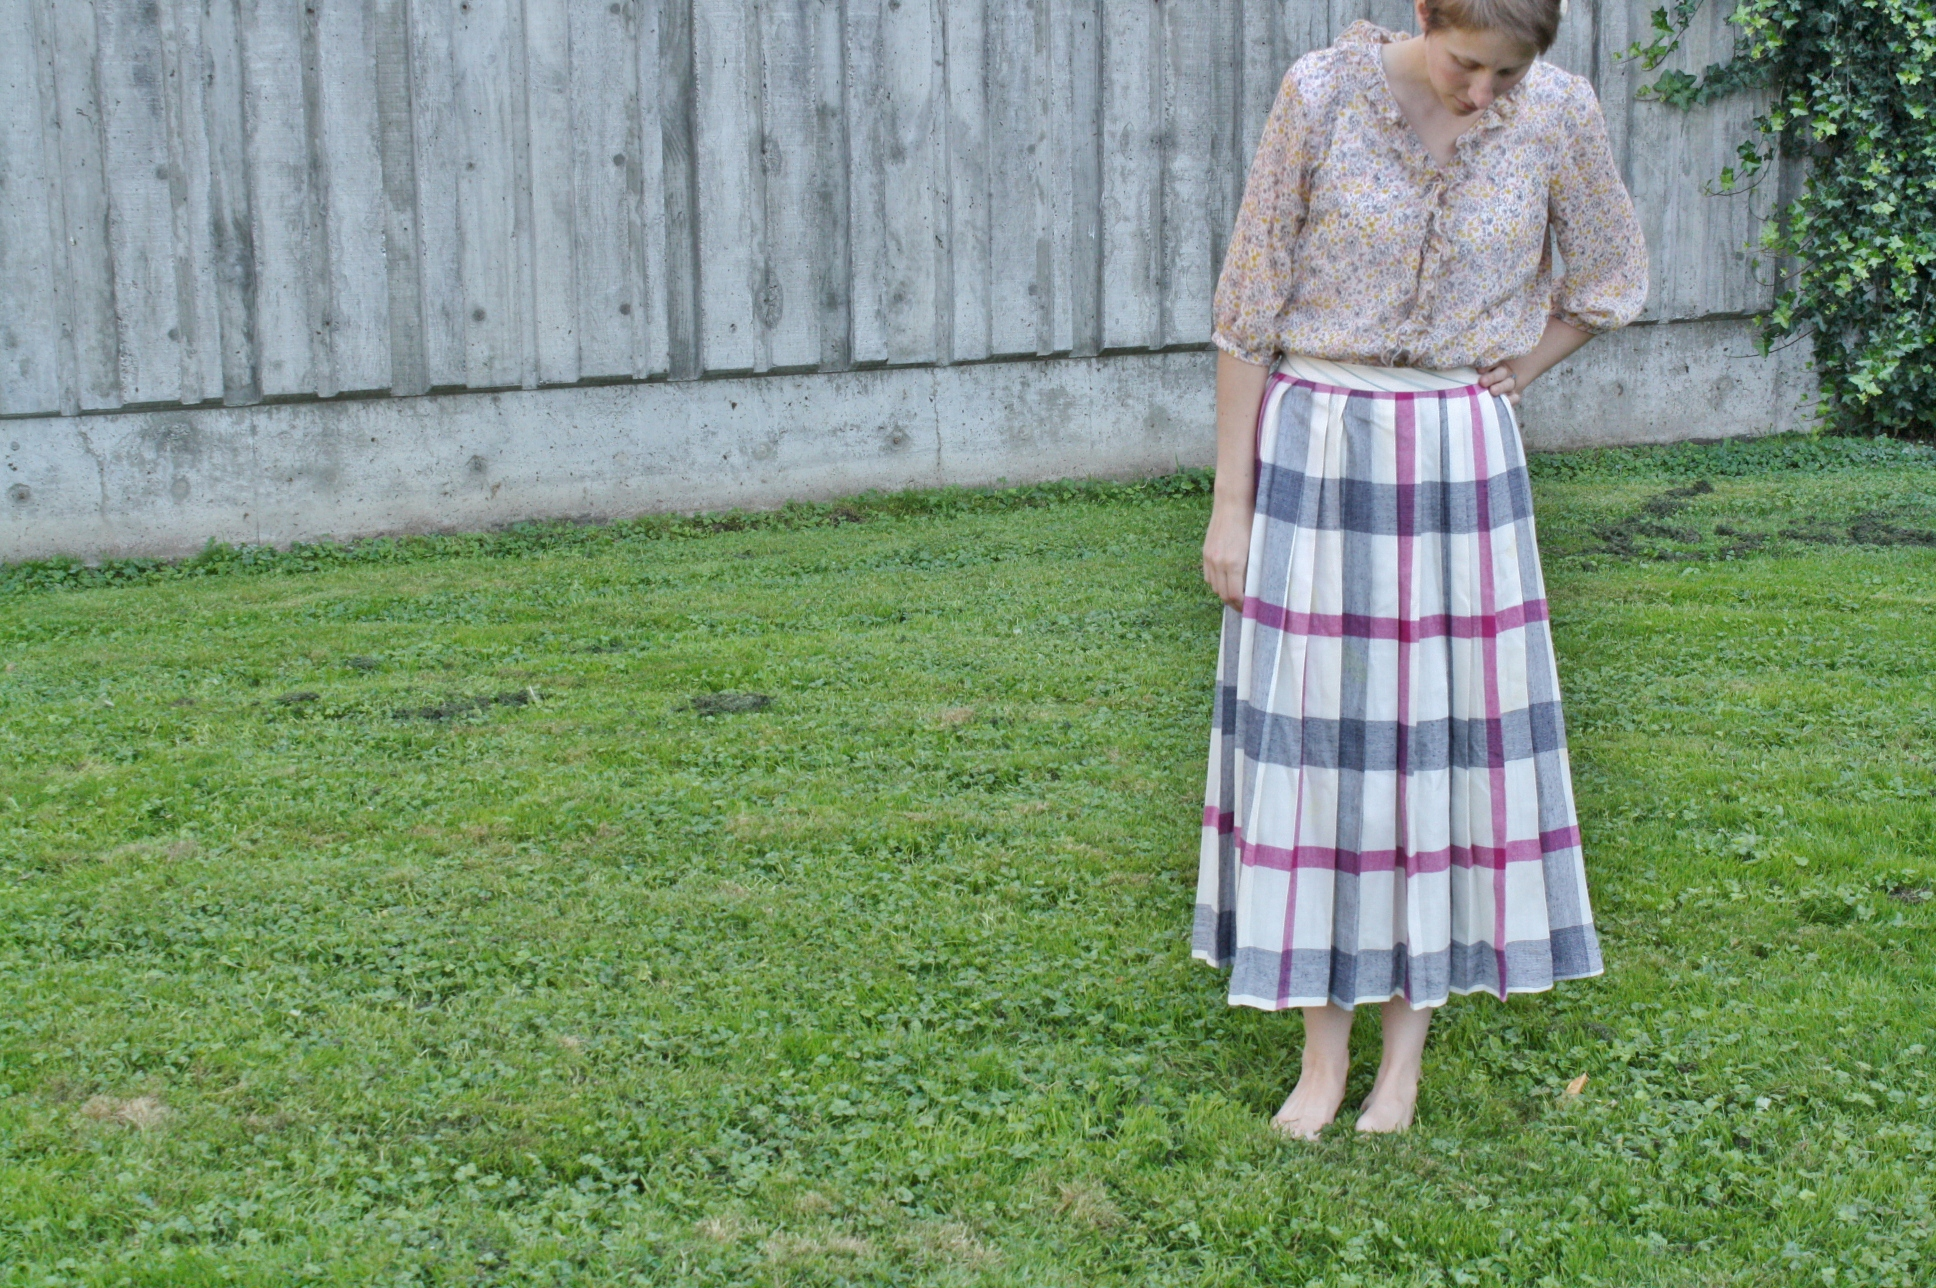 up-sizing a pleated skirt